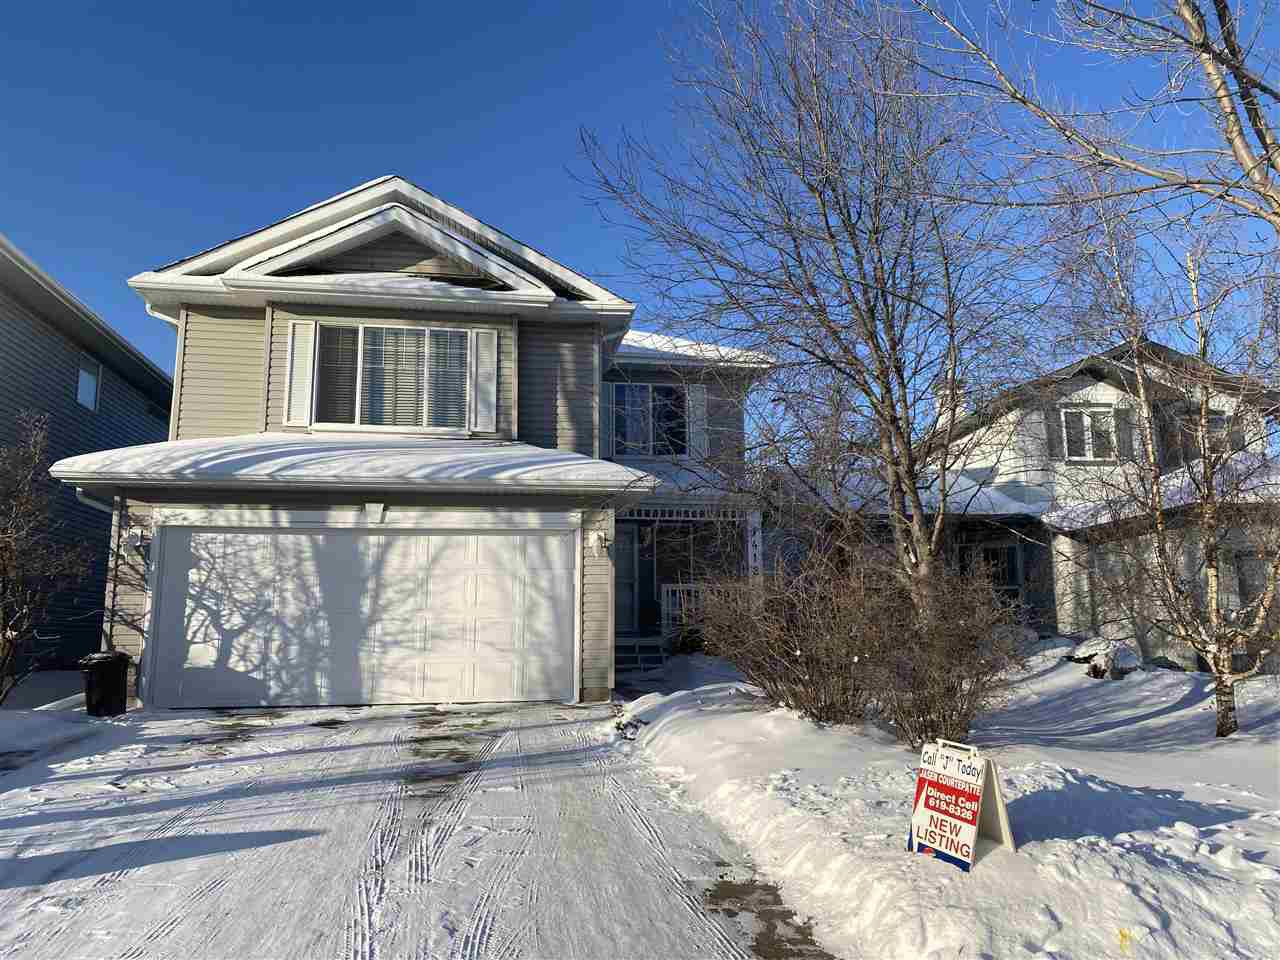 Main Photo: 1412 BRECKENRIDGE Drive in Edmonton: Zone 58 House for sale : MLS®# E4184234